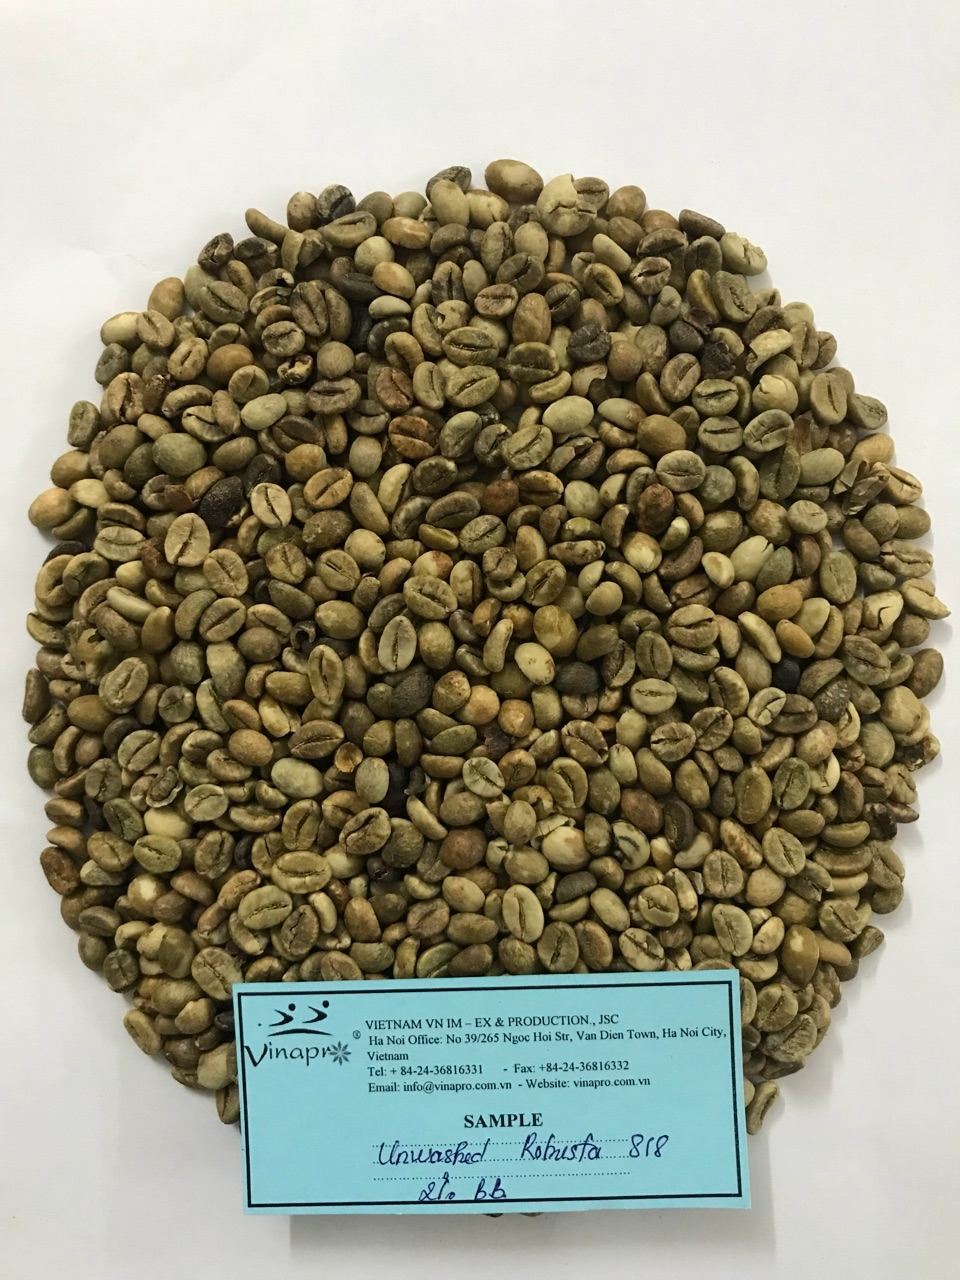 unwashed robusta coffee bean s16-s18